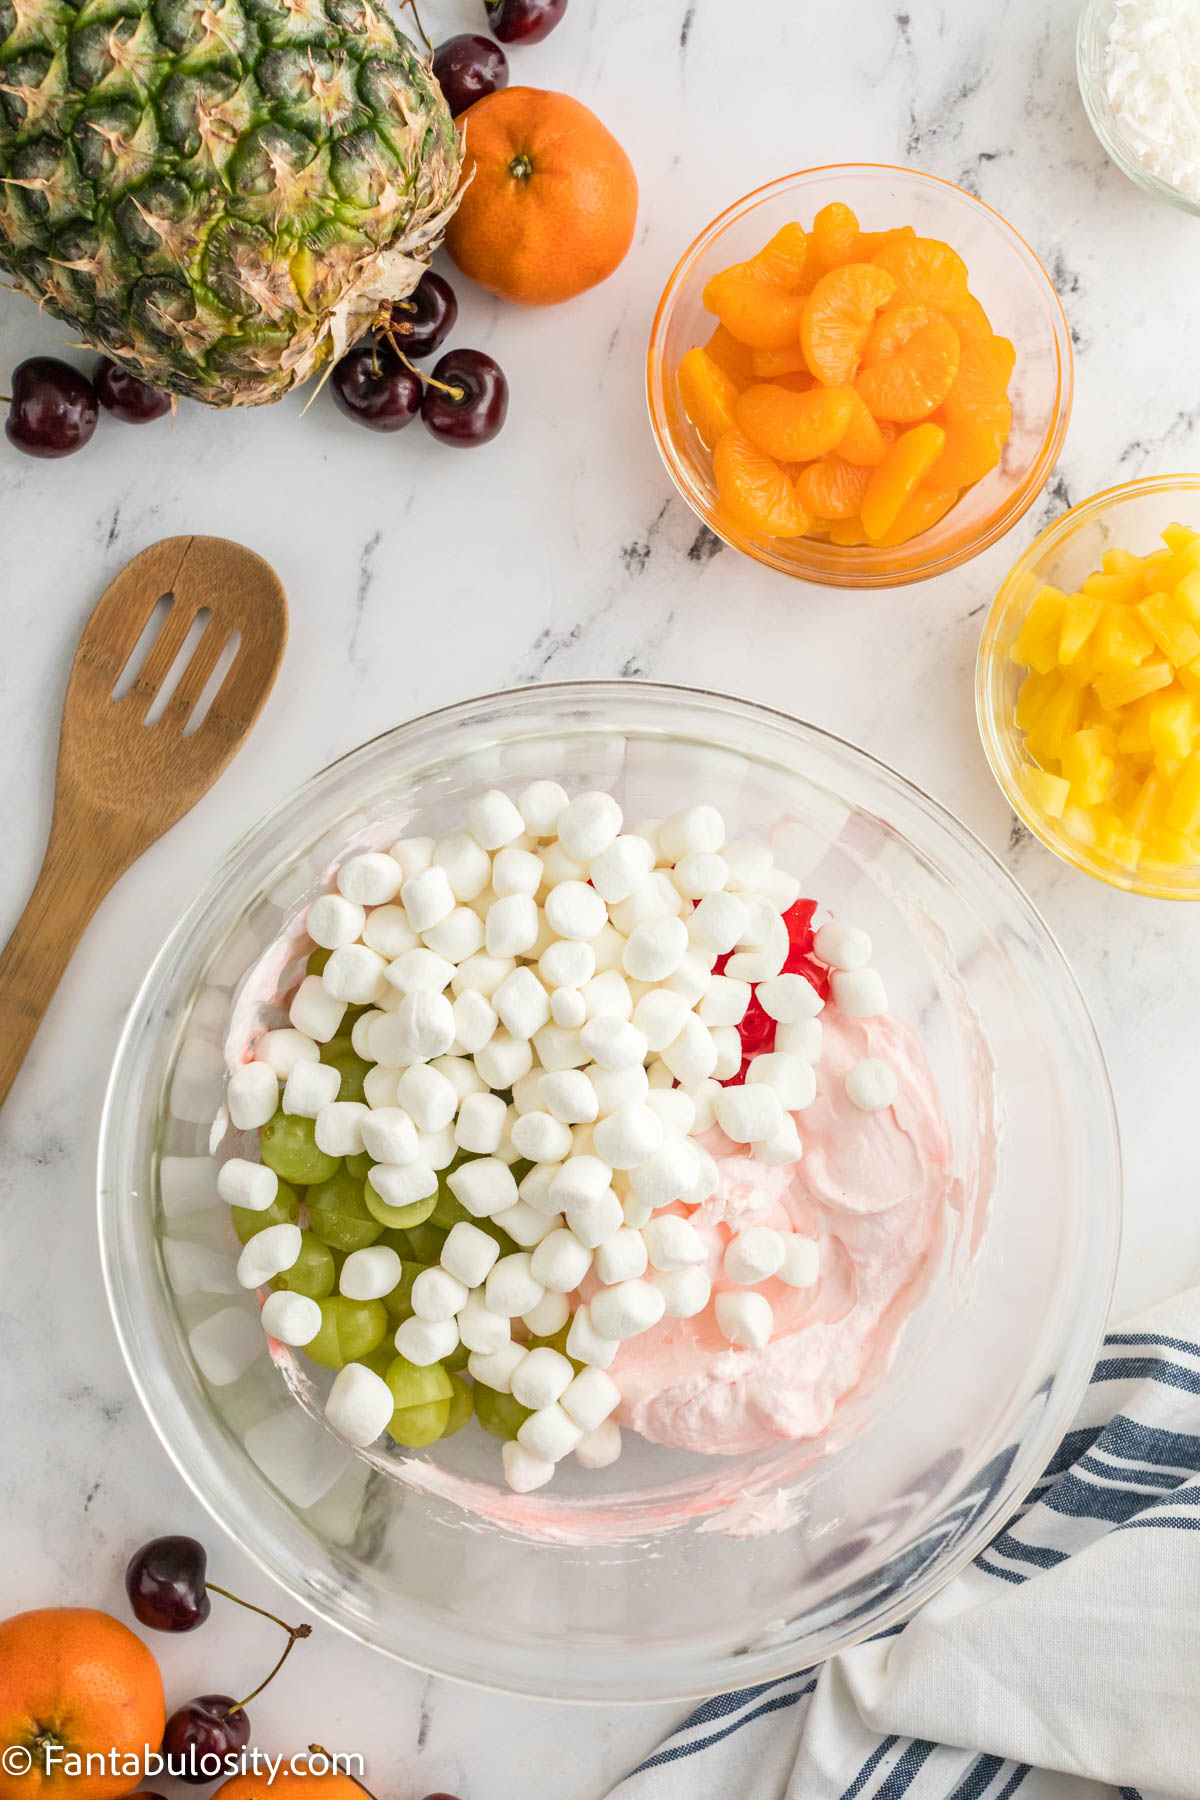 Add in marshmallows to fruit salad